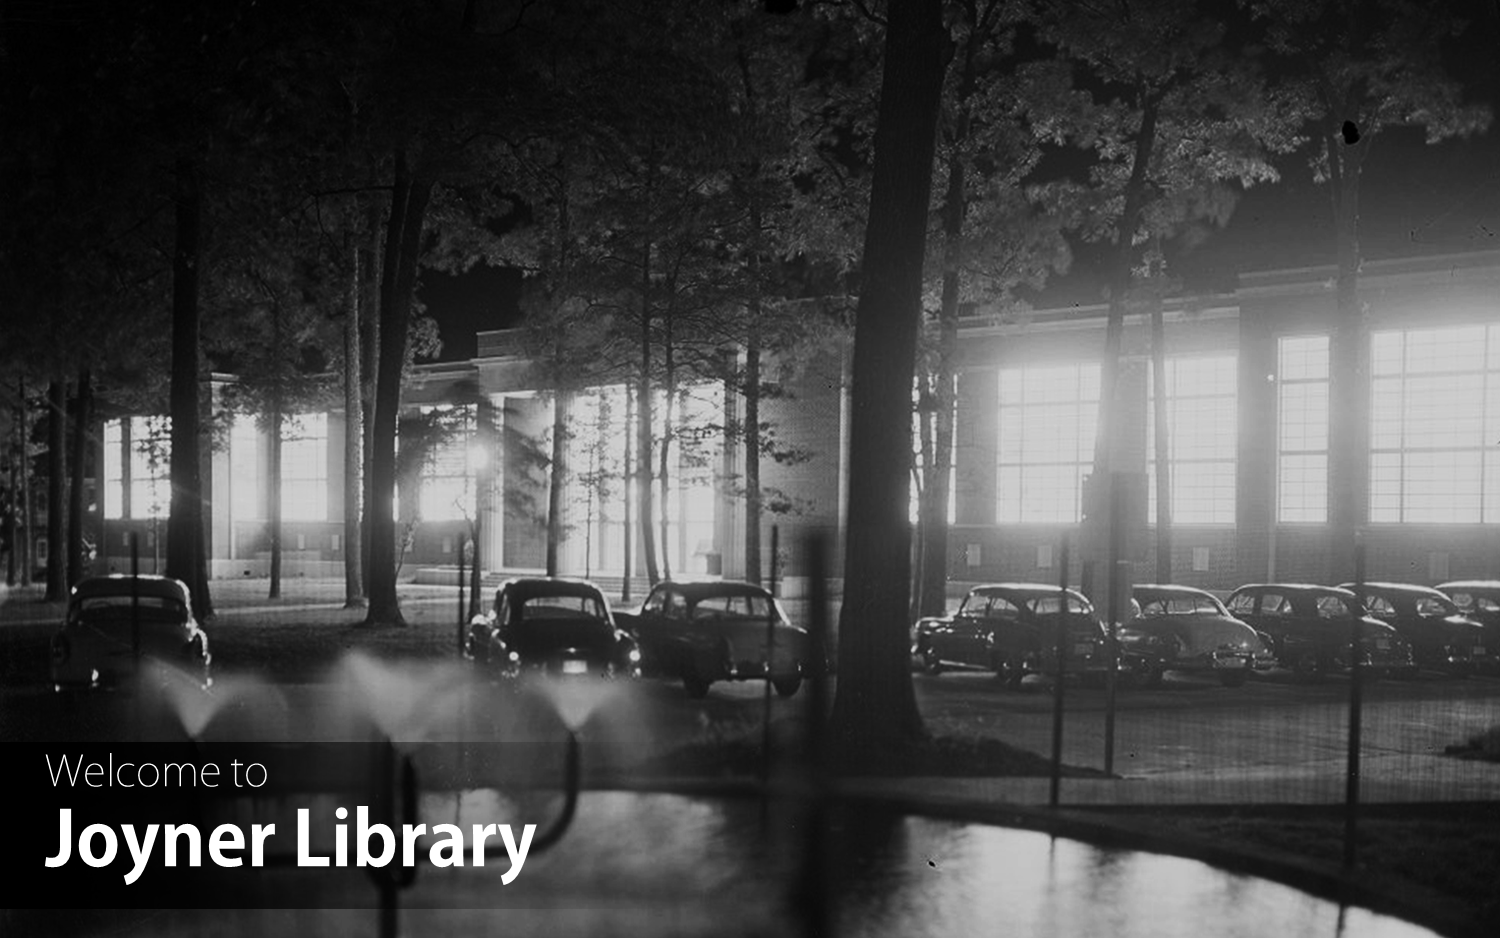 Image of Joyner Library circa 1956